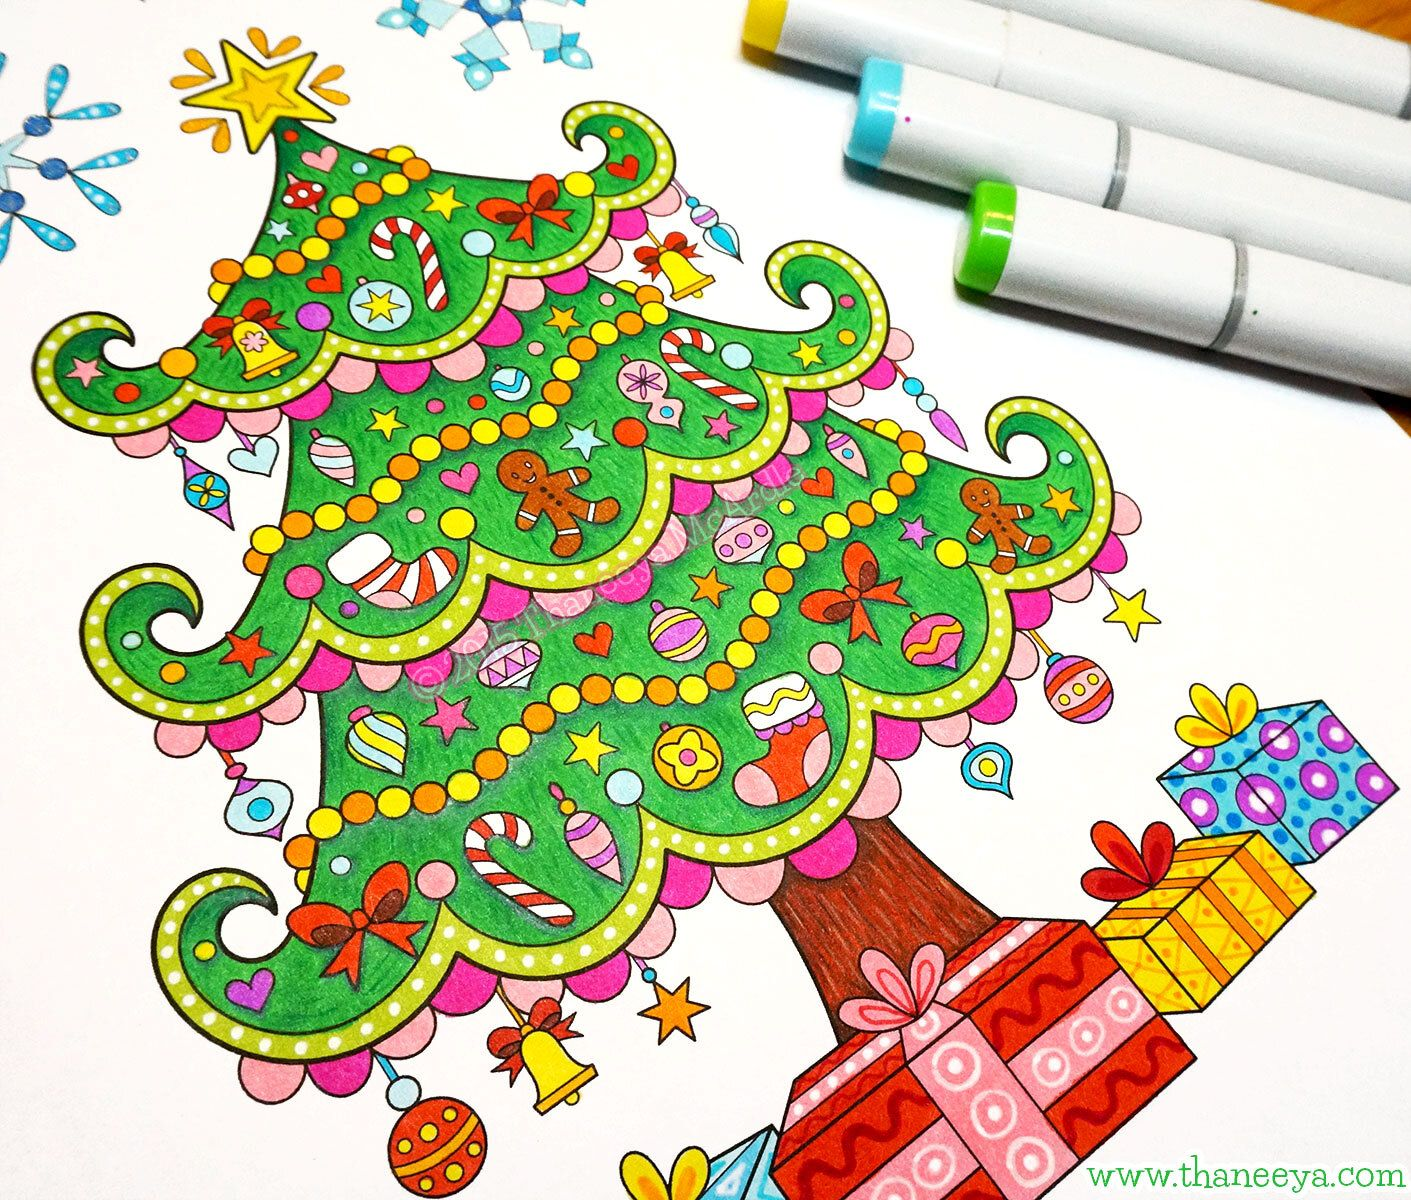 Intro To Art Markers A Beginner S Guide To Markers For Coloring And Drawing Thaneeya Com Christmas Tree Coloring Page Marker Art Christmas Coloring Pages